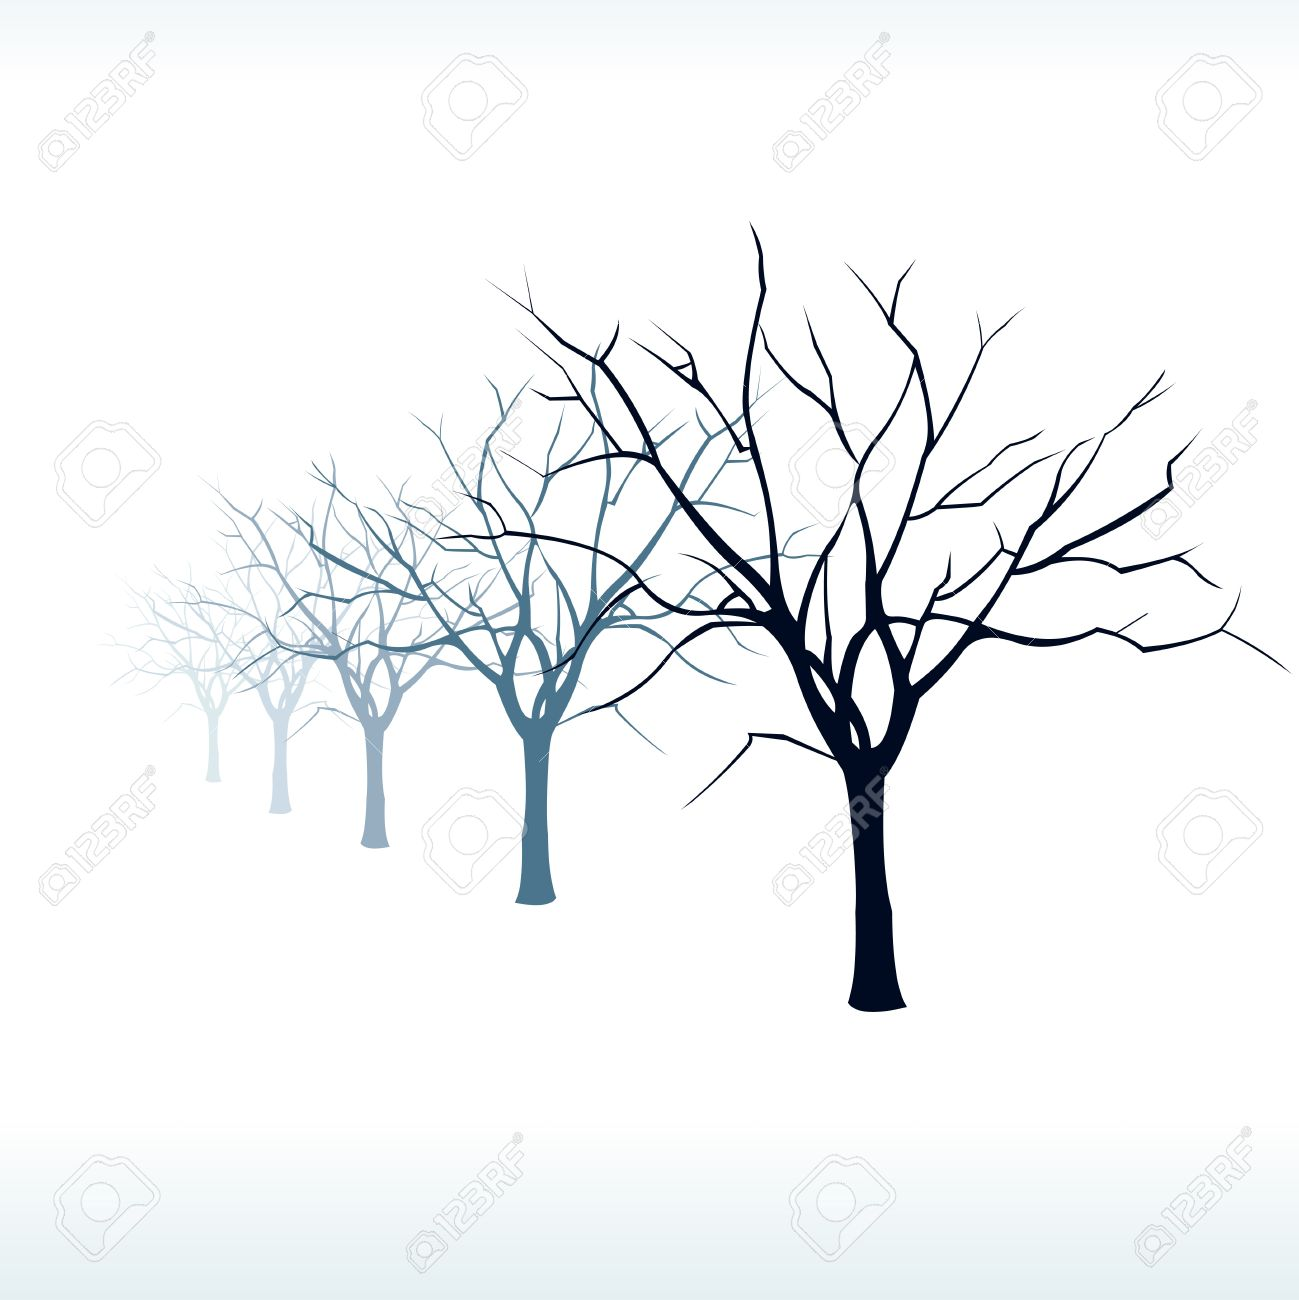 1299x1300 Bare Trees Silhouette In The Snow At Fog Easy Editable Layered